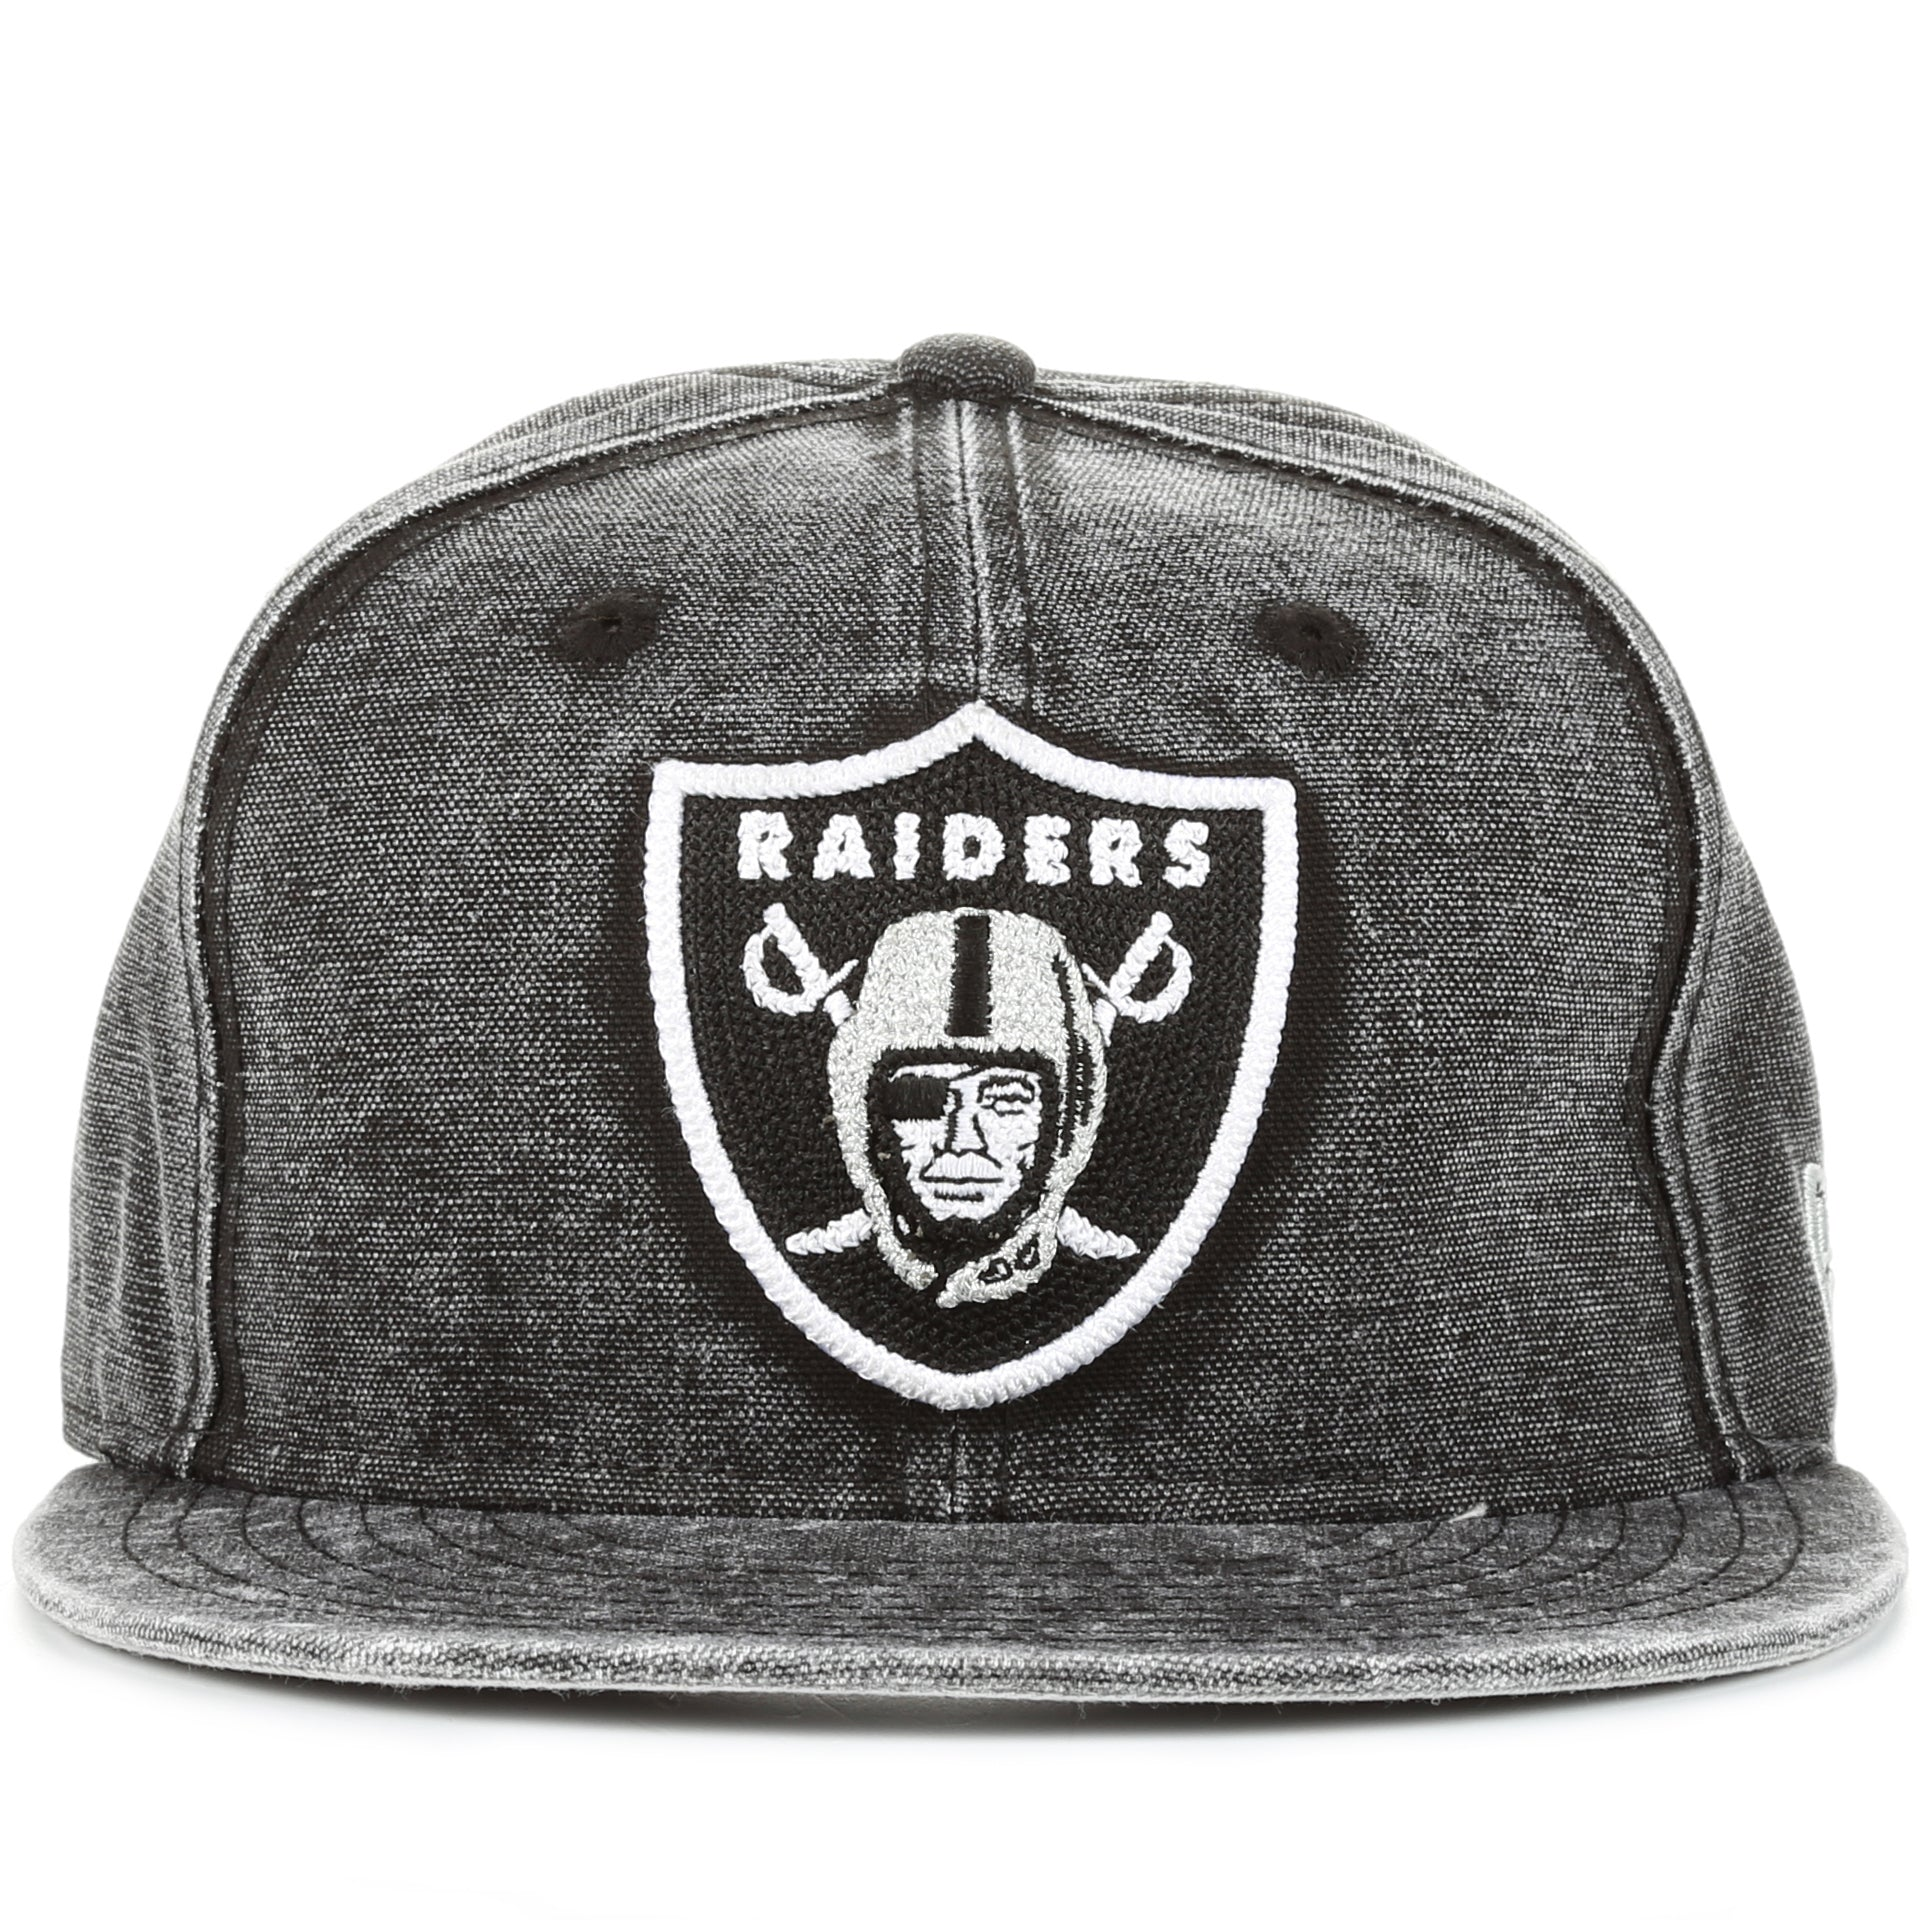 check out c8ee5 fce34 New Era 9Fifty Washed Over Snapback - Oakland Raiders Black Denim